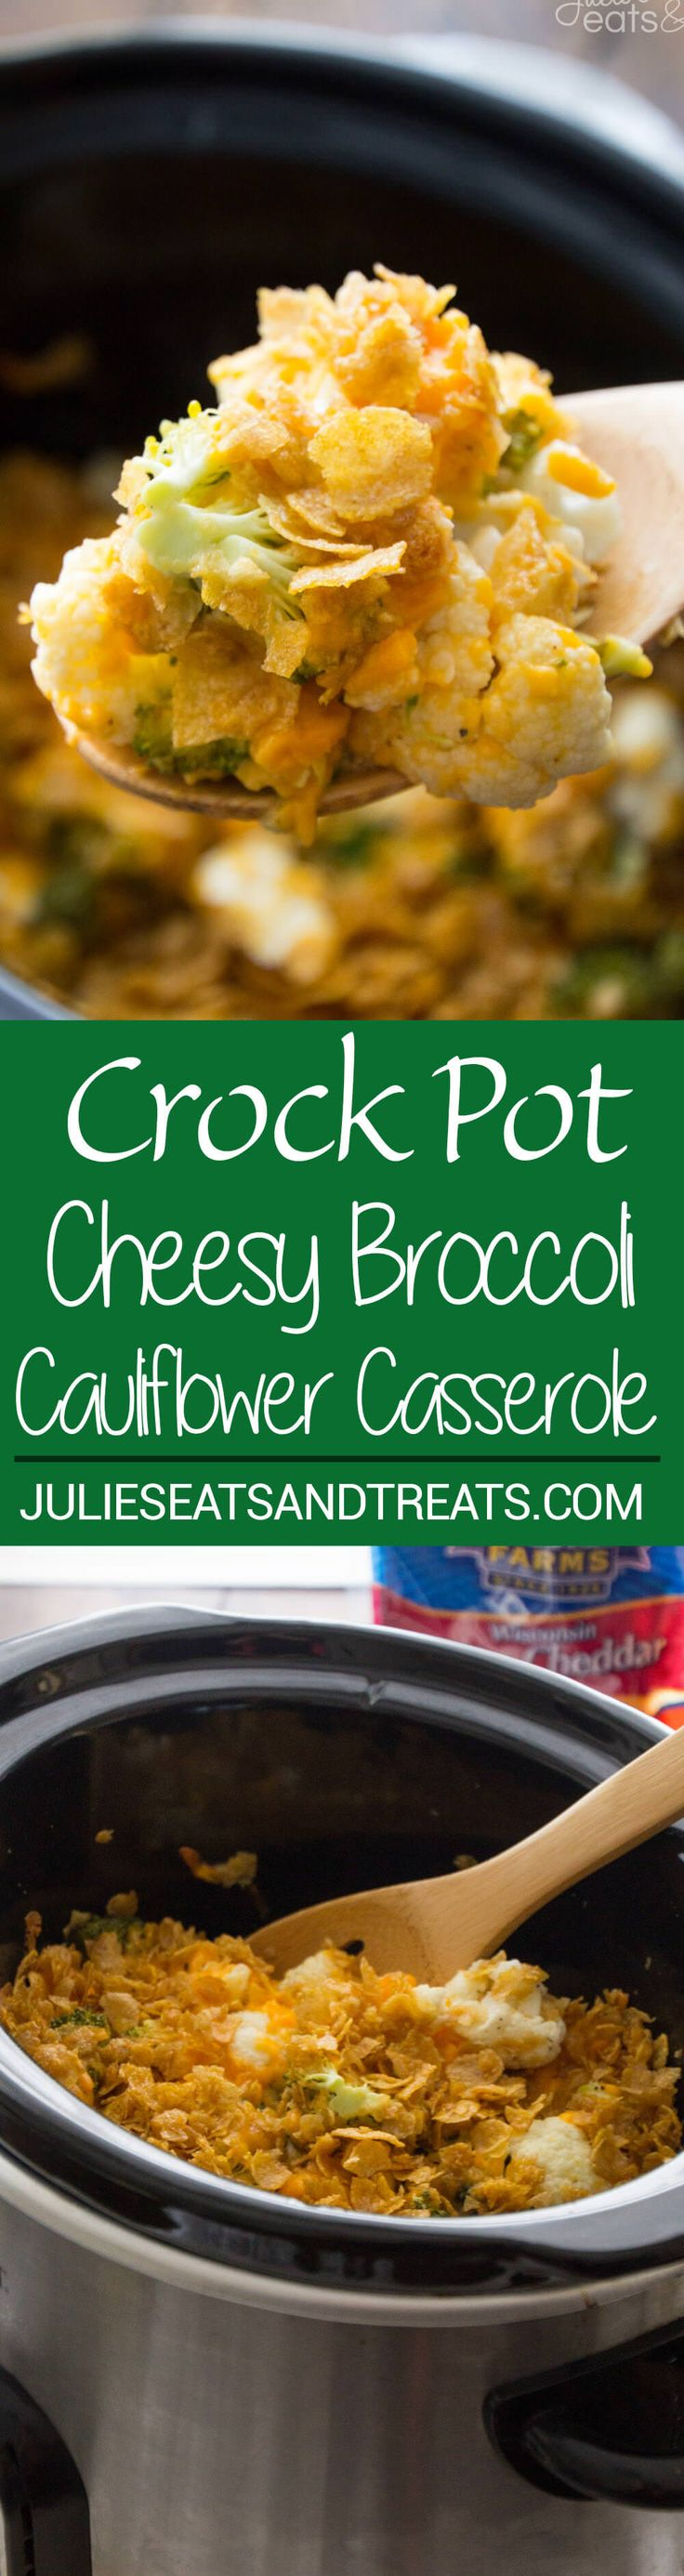 Crock Pot Cauliflower Broccoli Casserole Recipe ~ The Perfect Side Dish Recipe in your Slow Cooker! Broccoli and Cauliflower Smothered in Cheese and Topped with Corn Flakes! ~ http://www.julieseatsandtreats.com